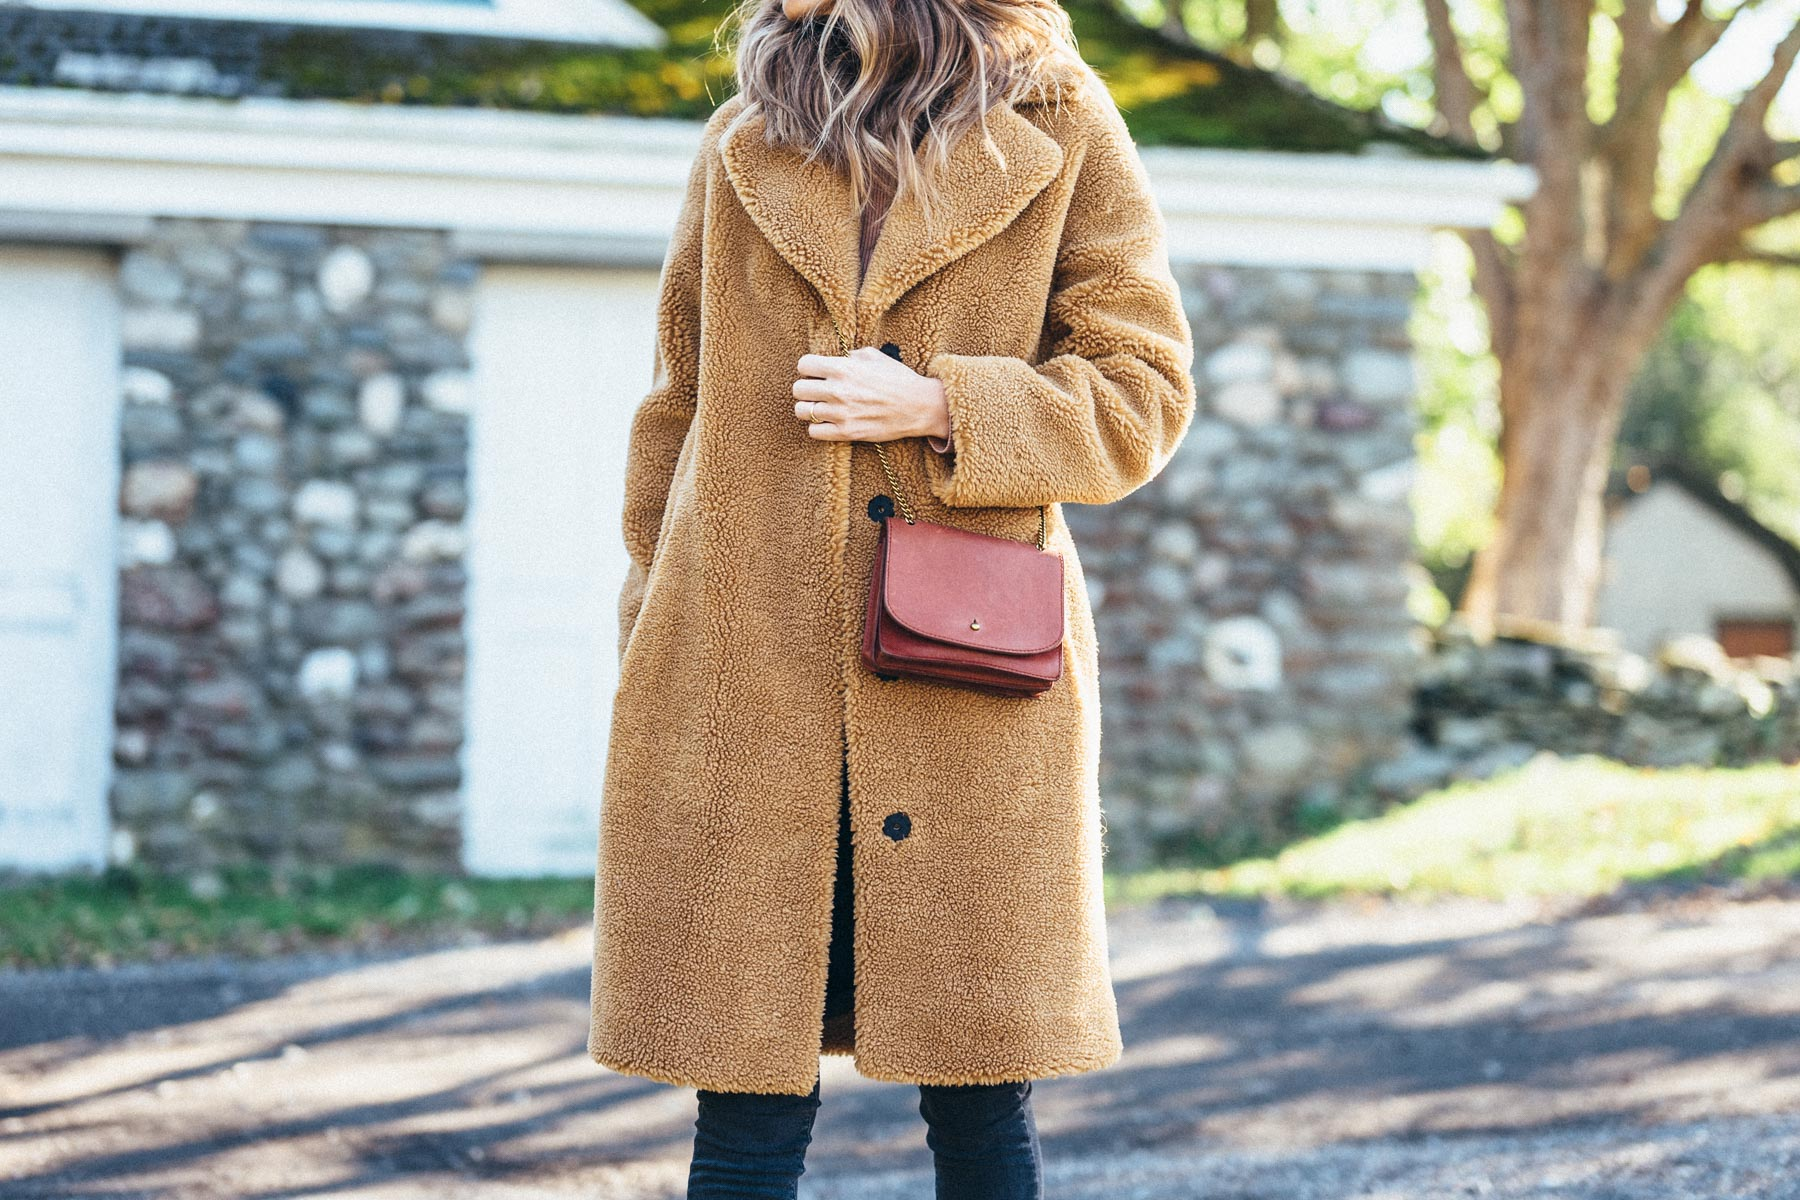 Jess Ann Kirby in the luisa viaroma STAND faux fur teddy coat and madewell crossbody bag